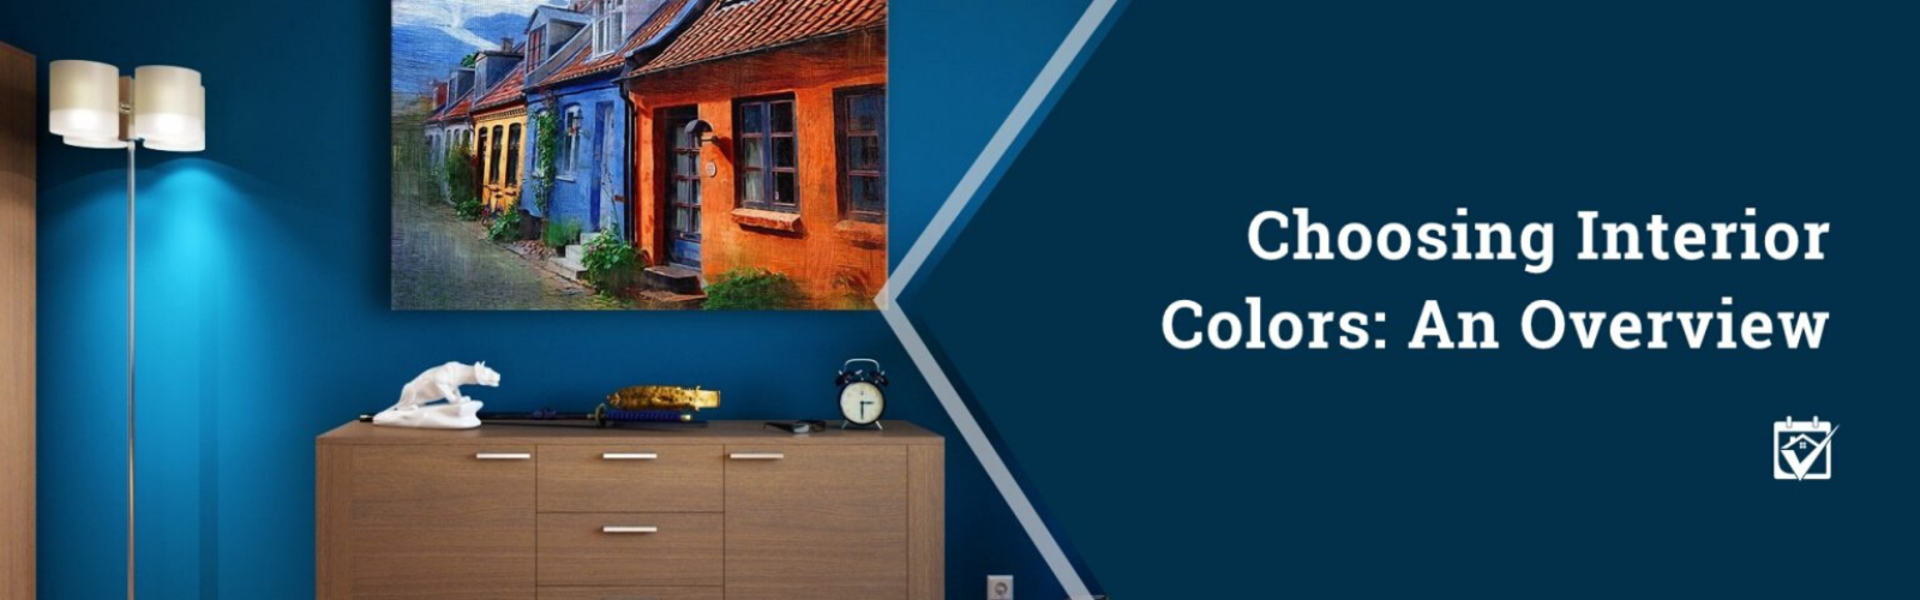 Choosing Interior Colors: An Overview